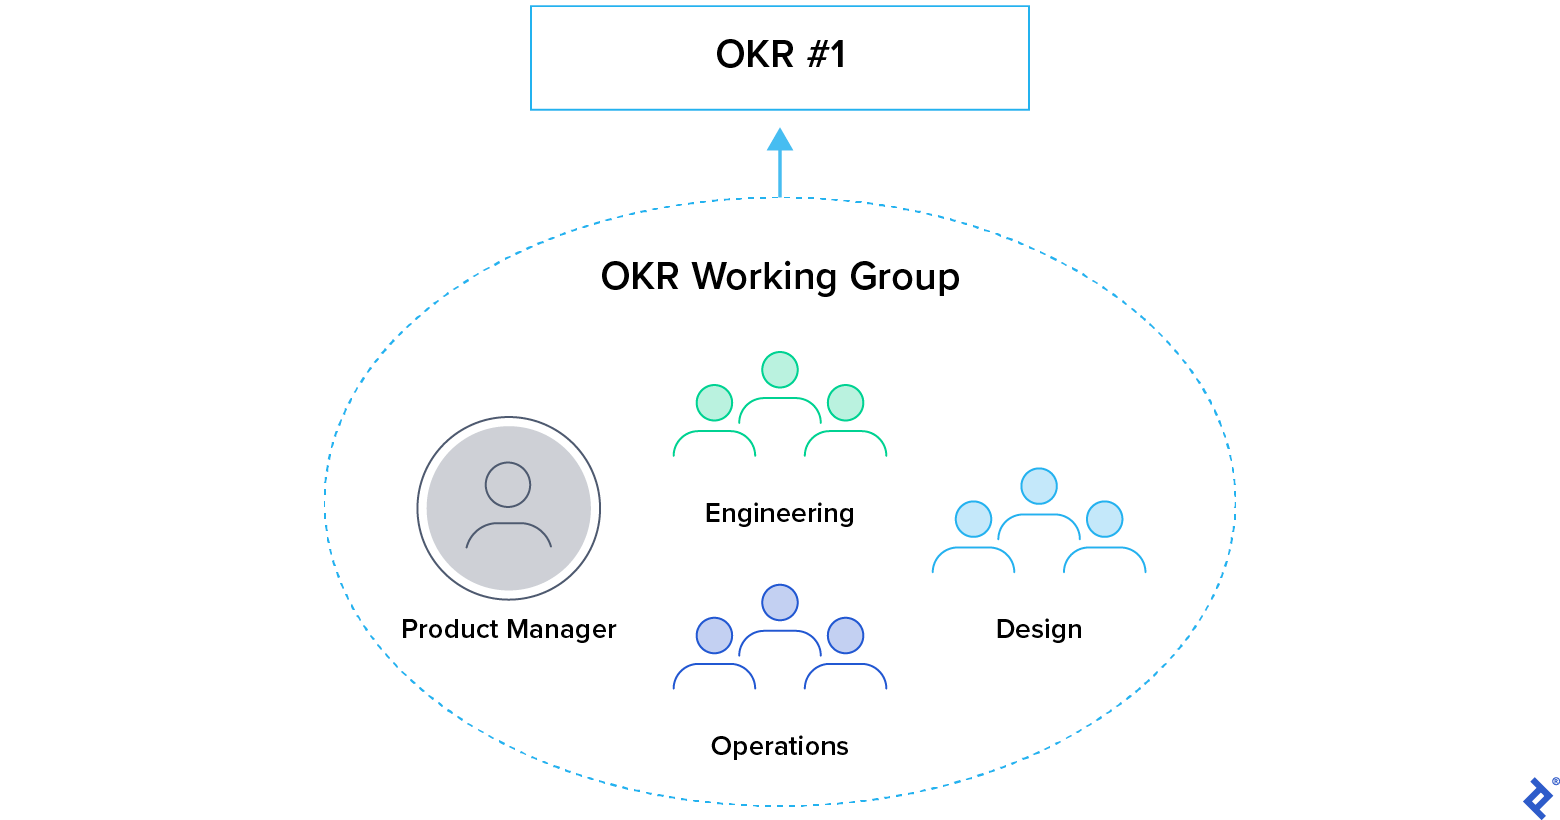 OKR Working Group